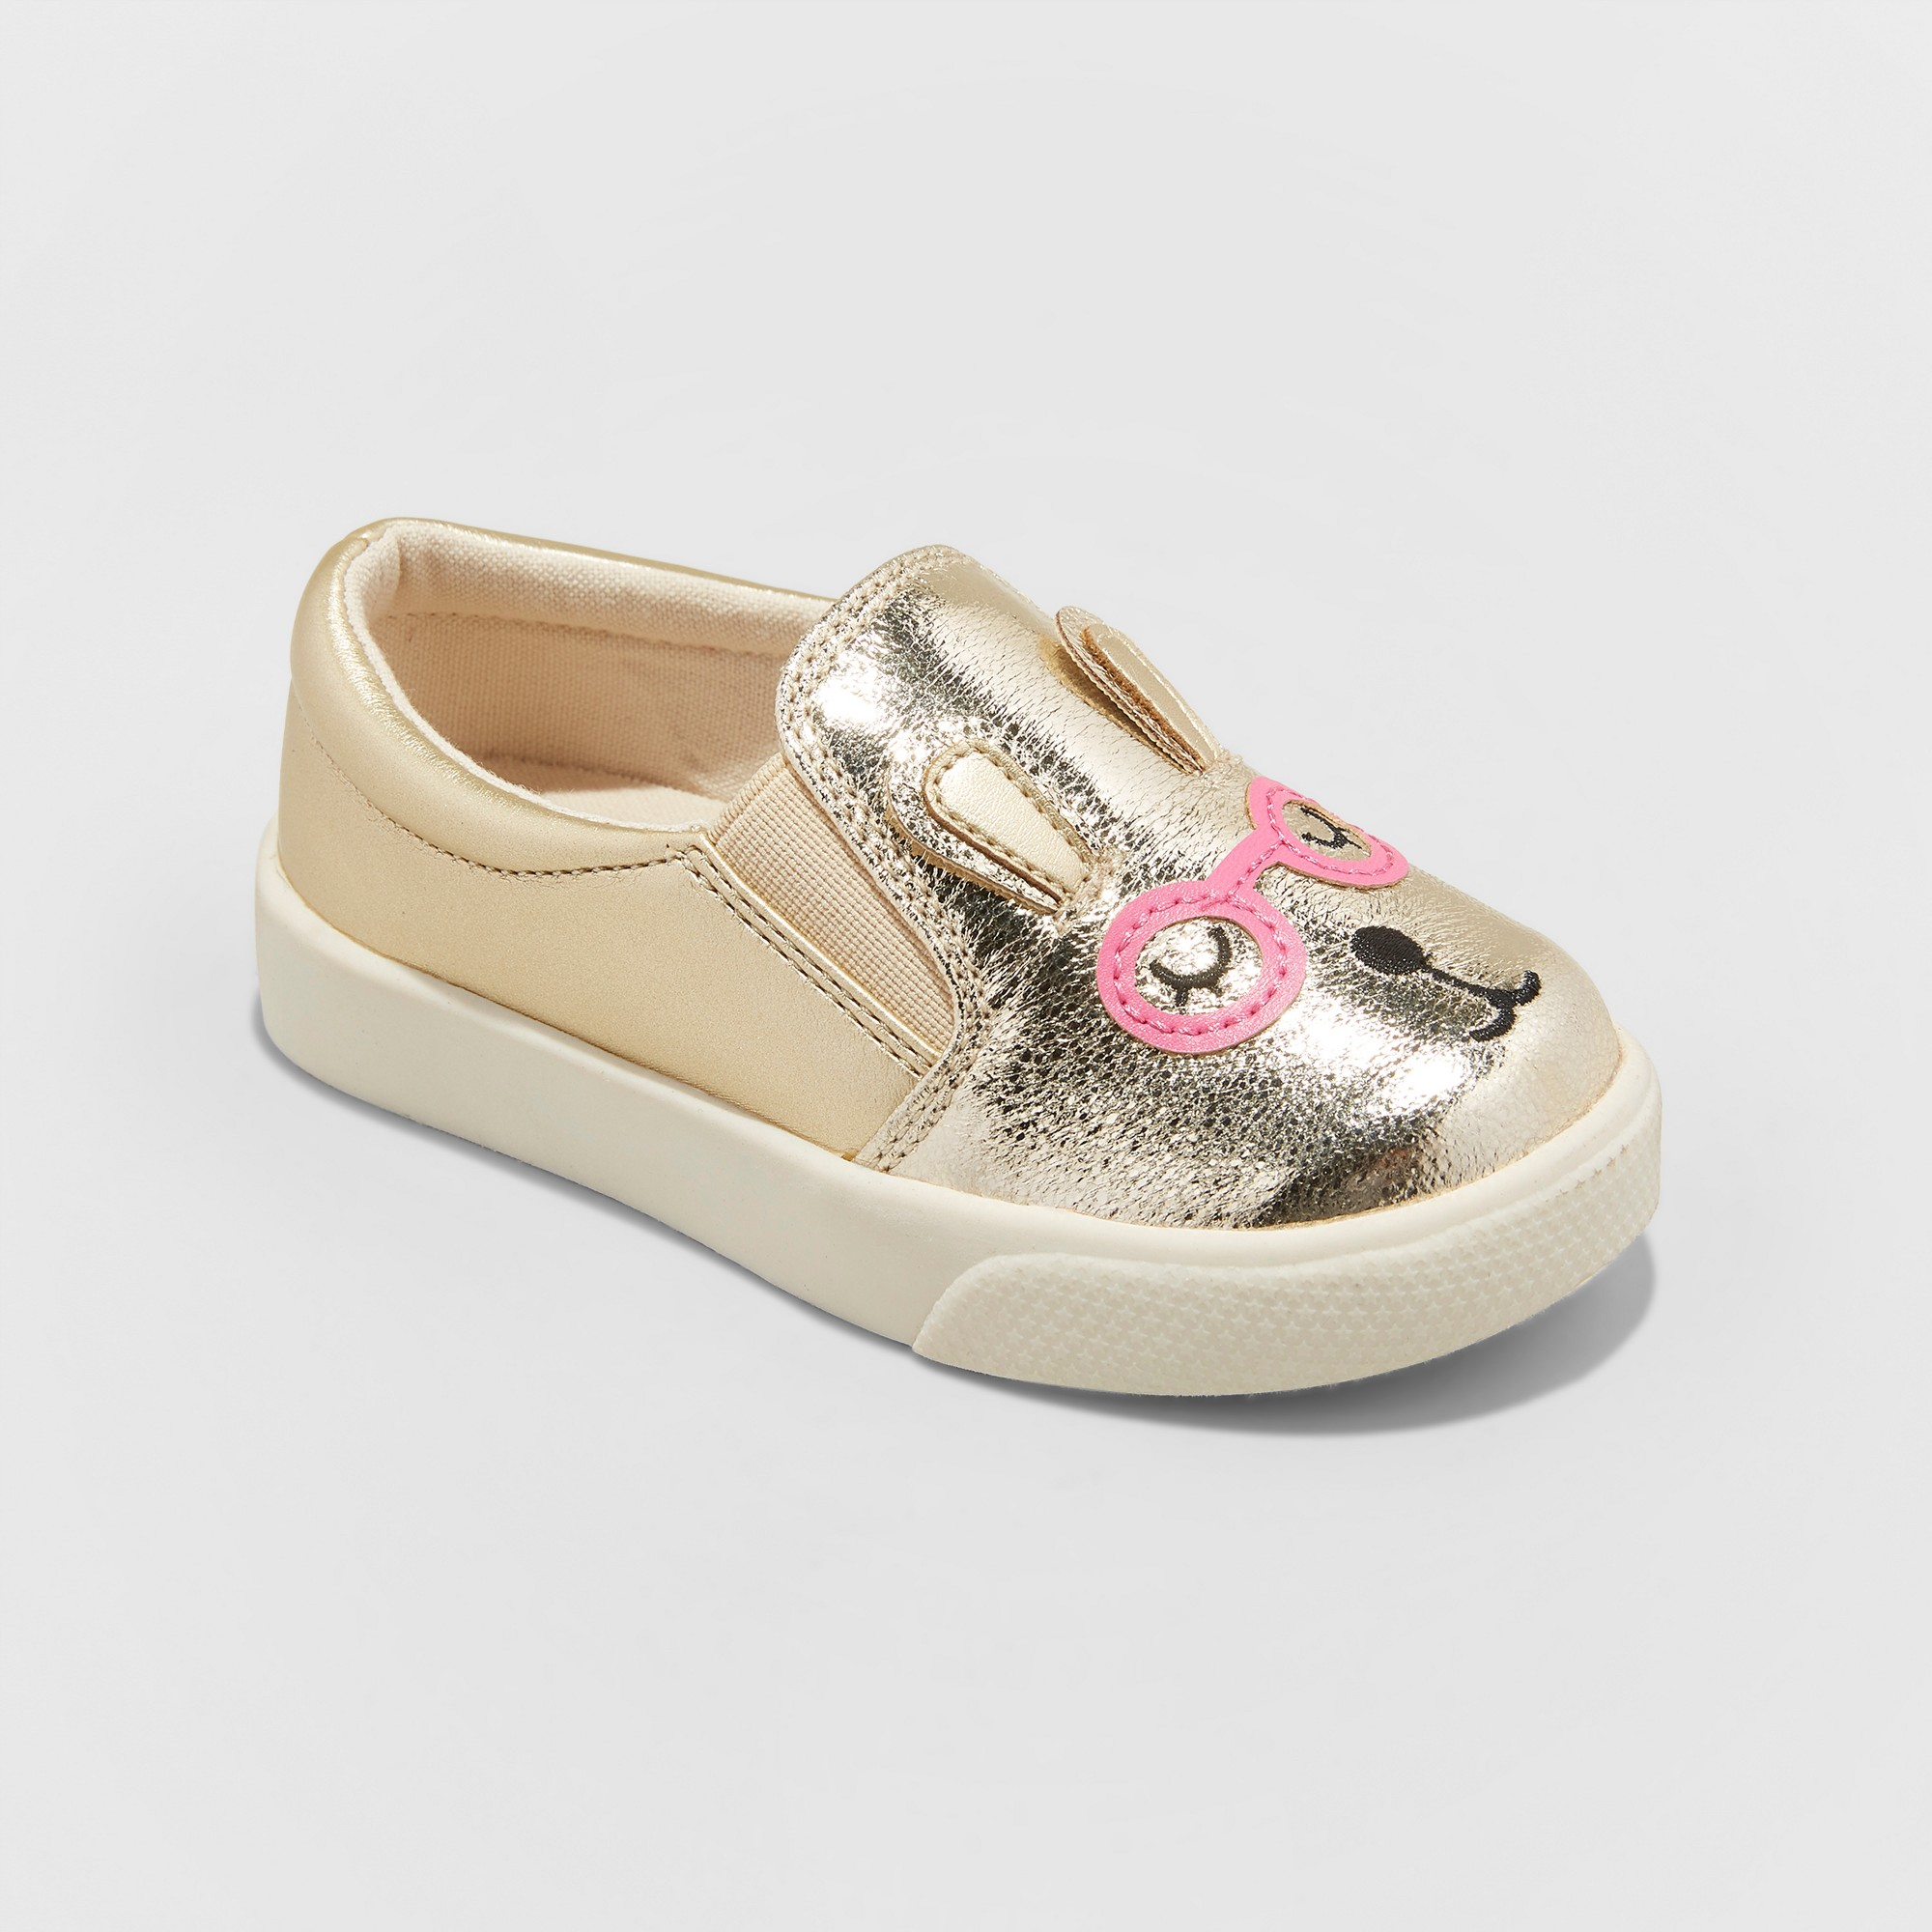 dd425c430 Toddler Girls  Augusta Slip on Metallic Bunny Critter Sneakers - Cat   Jack  Gold 10